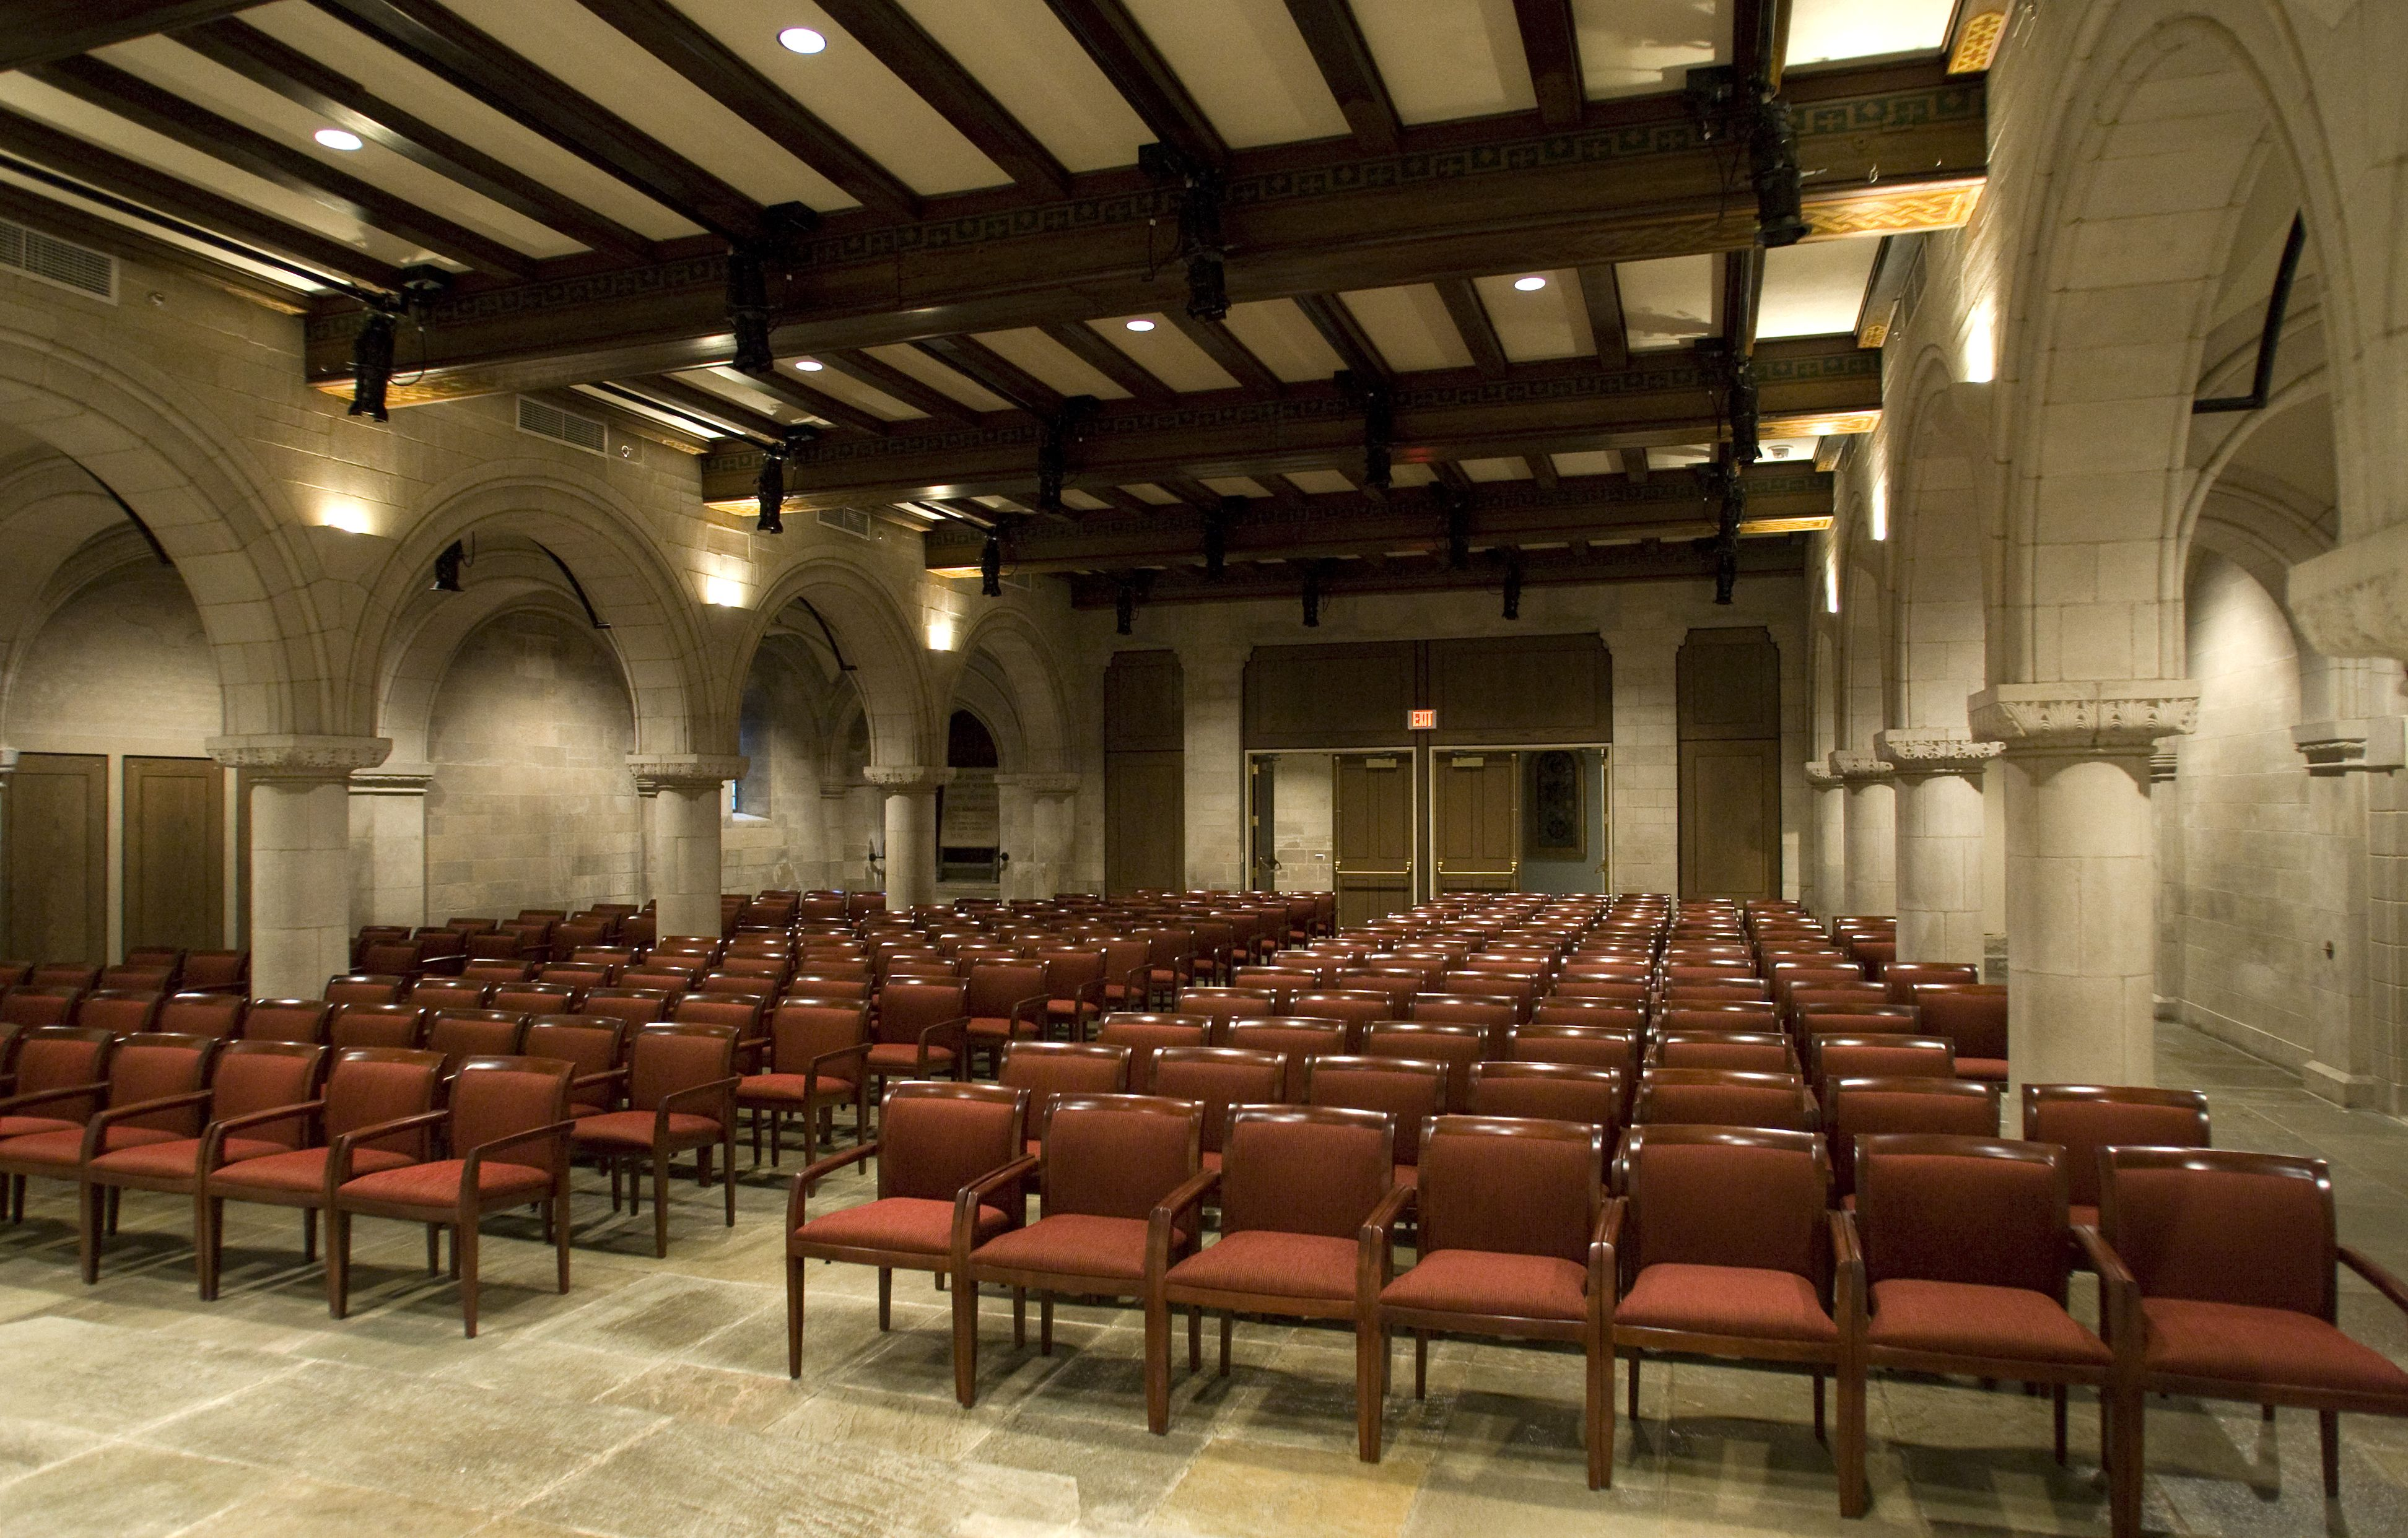 Rows of red upholstered armchairs for audience